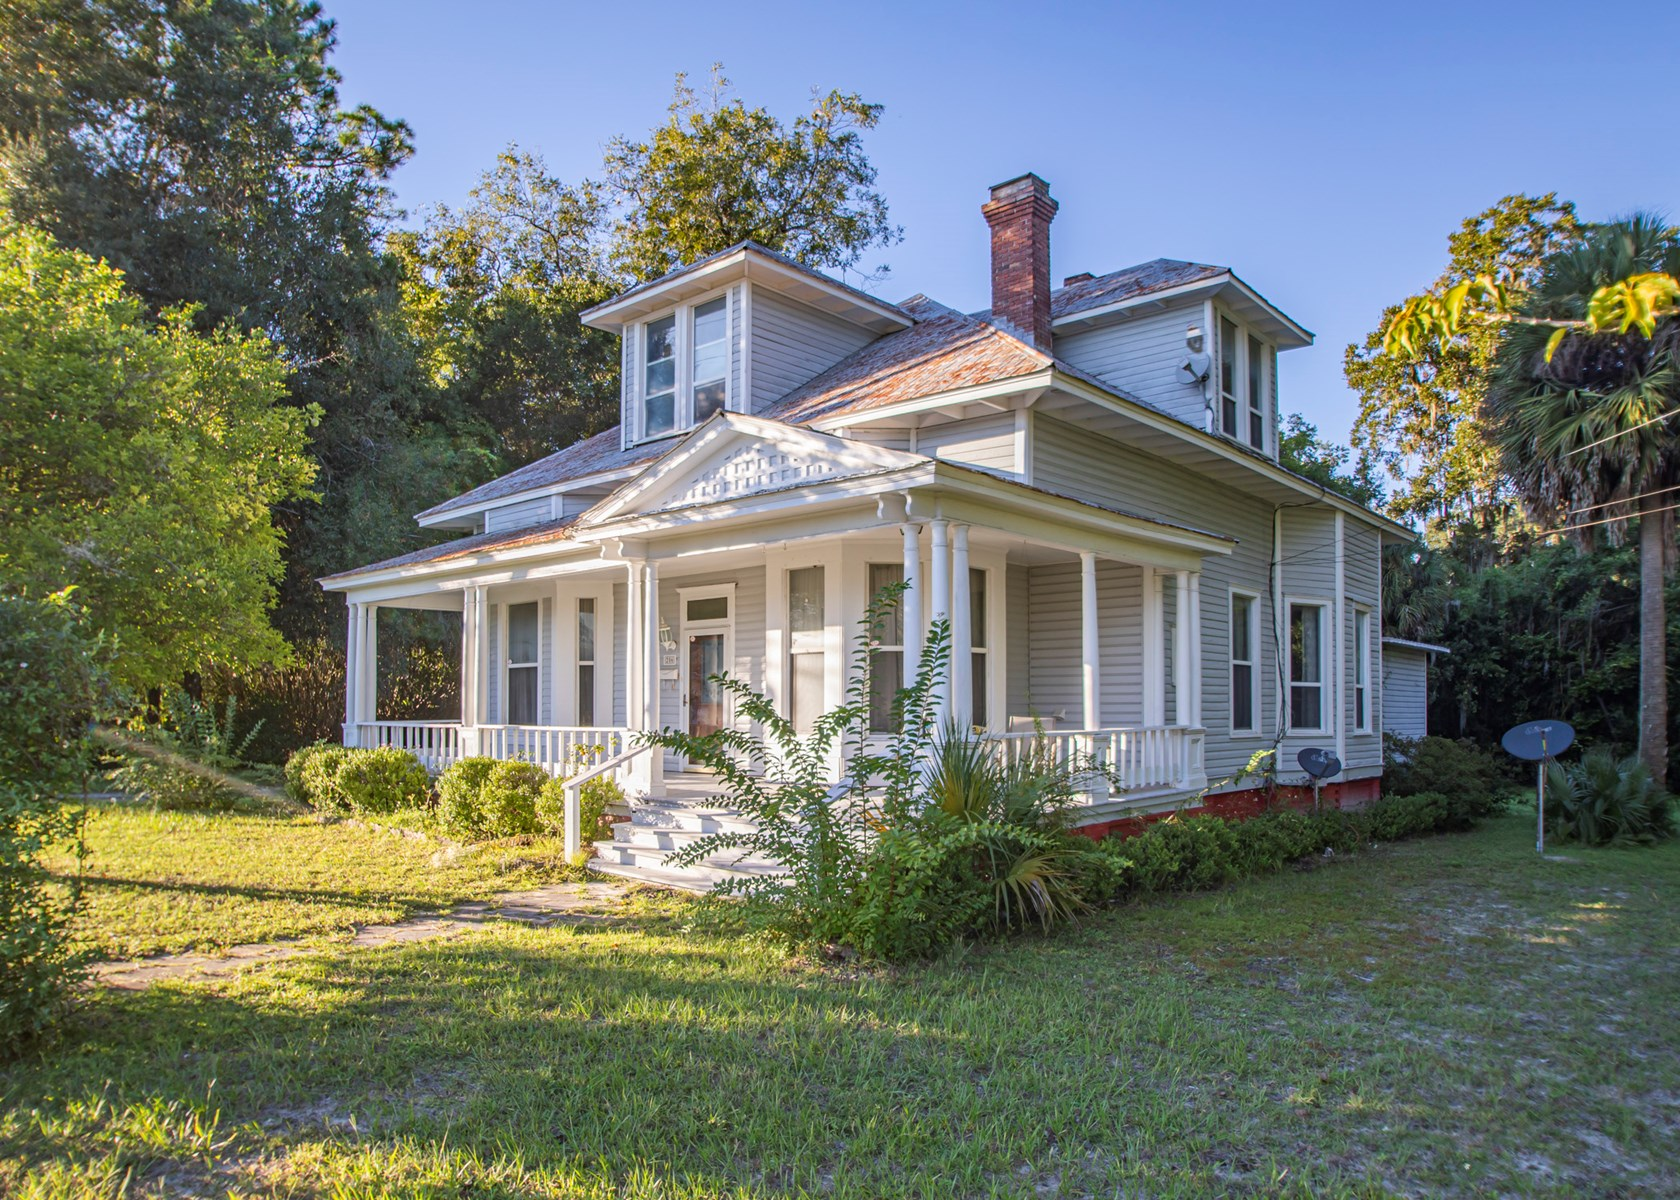 HISTORIC HOME LOCATED IN LIVE OAK, FL FOR SALE